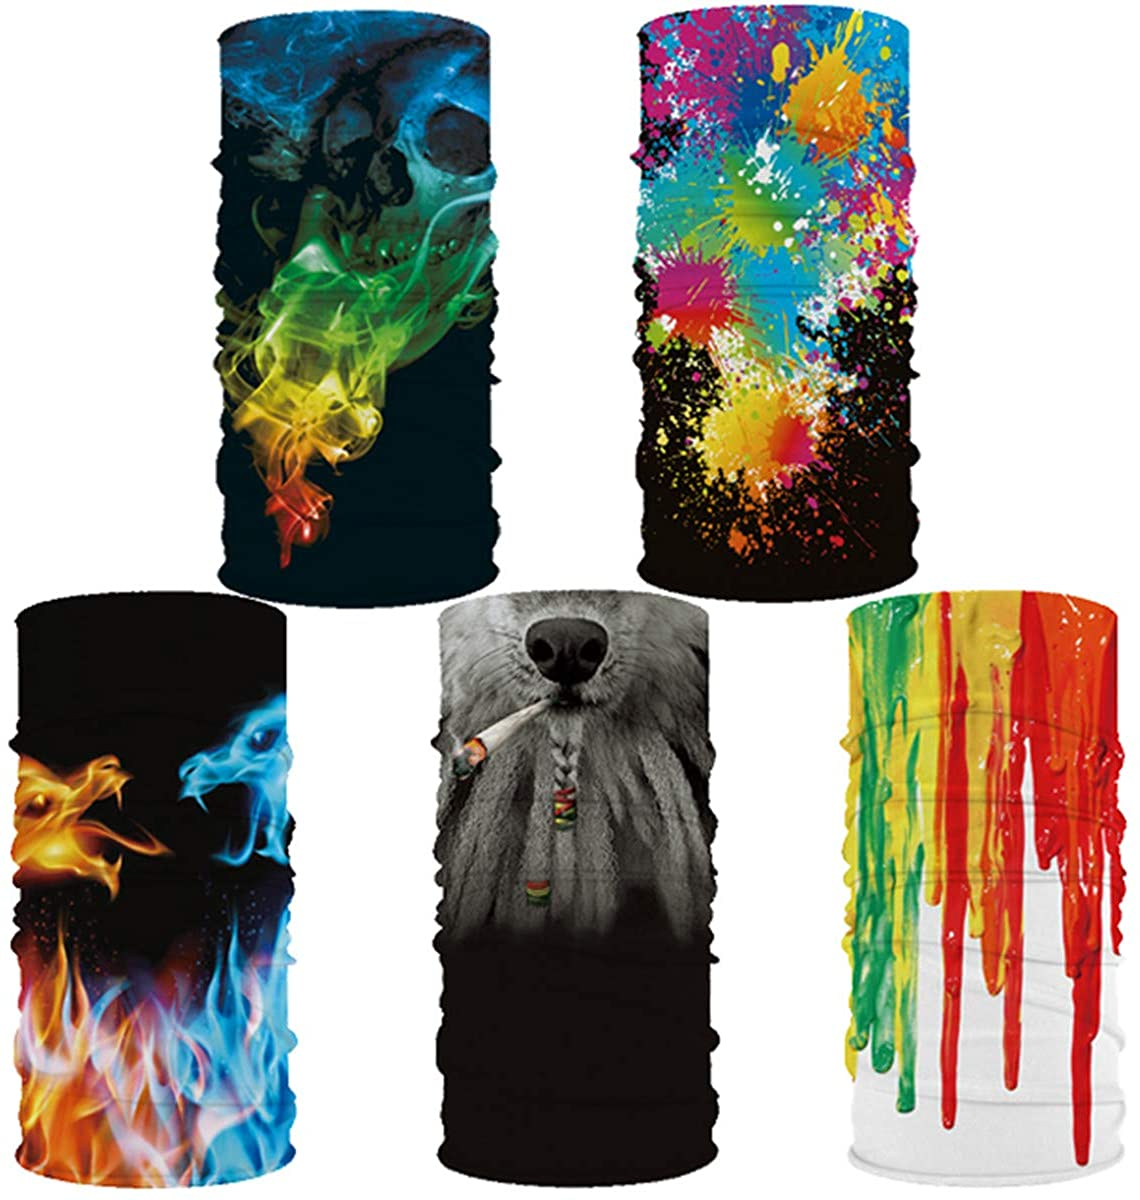 5 Pack of 3D Print Out Sport Face Mask Bandanas Neck Gaiter Sun UV Protection Dust Cover Balaclavas Scarf